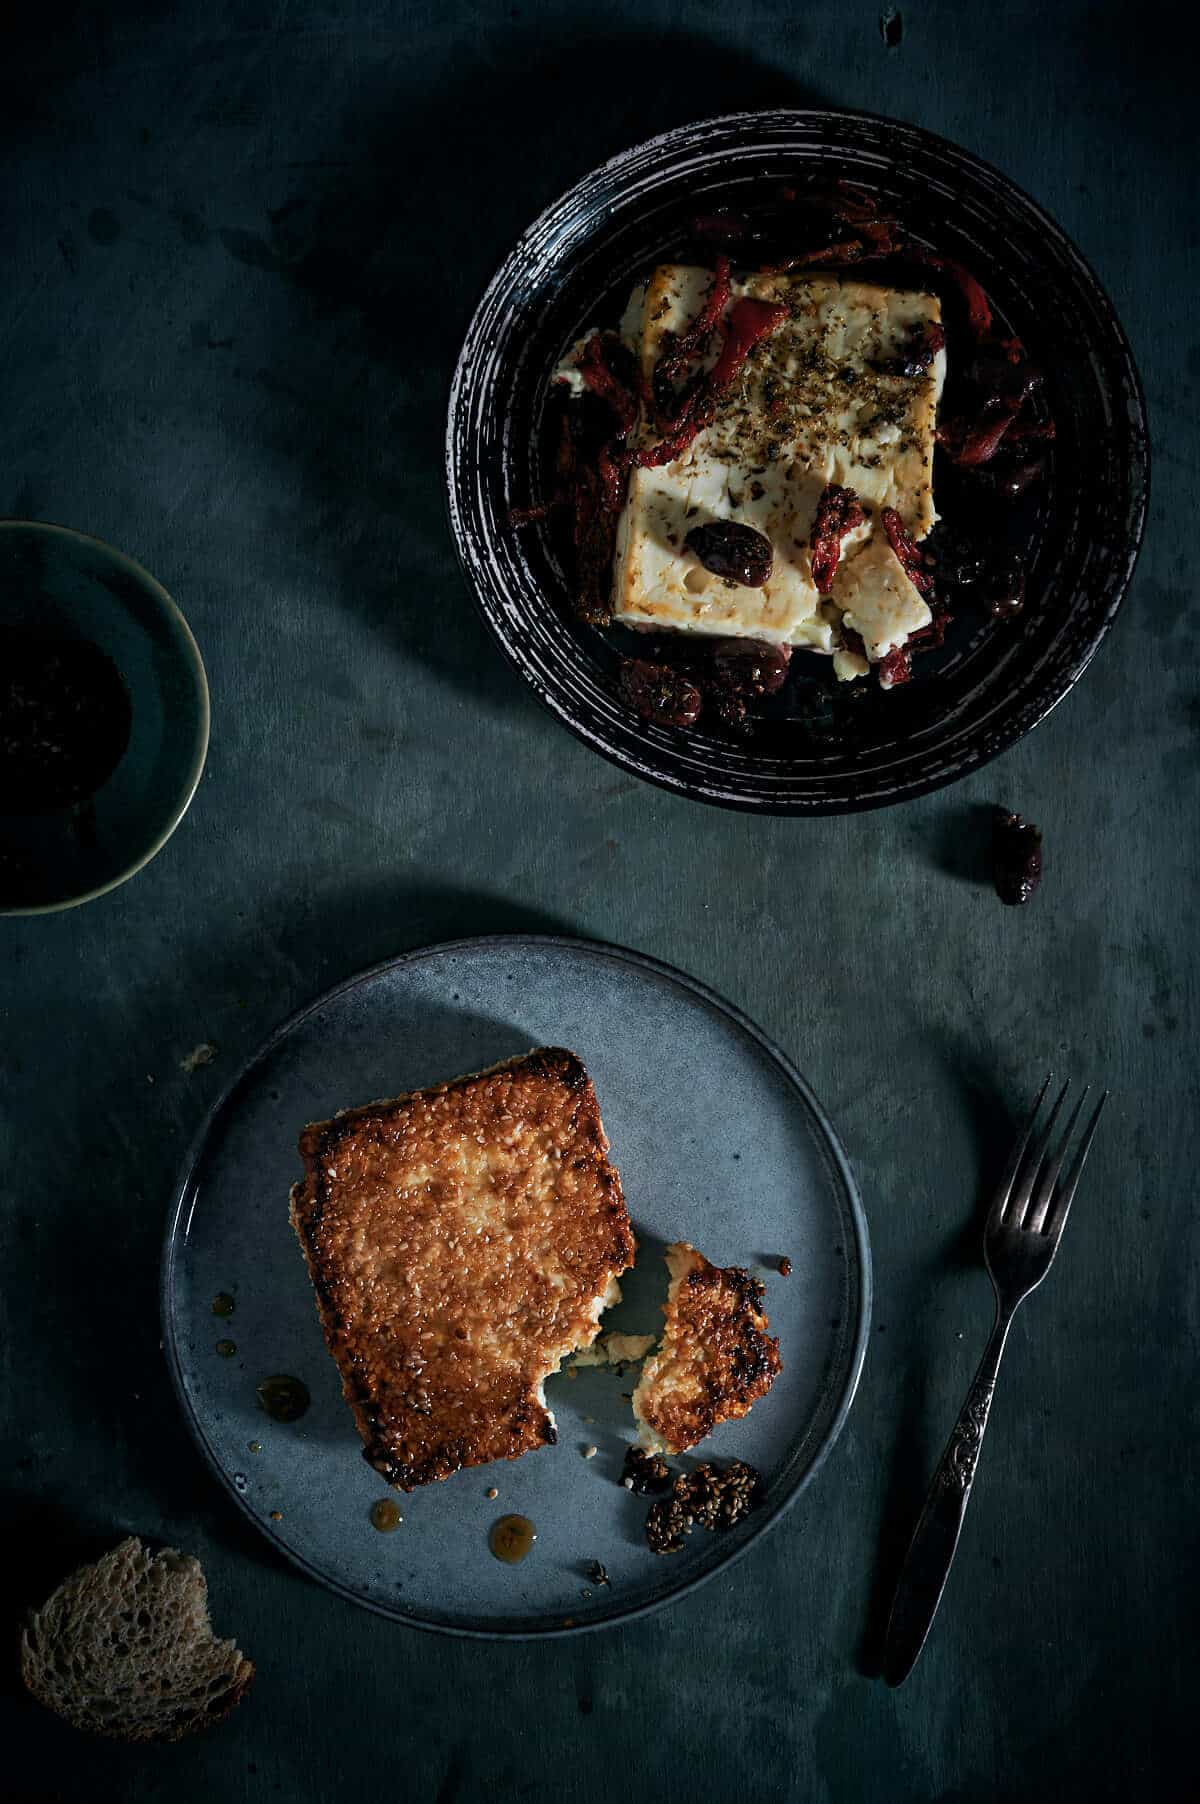 two plates on a table with a serve of baked feta cheese